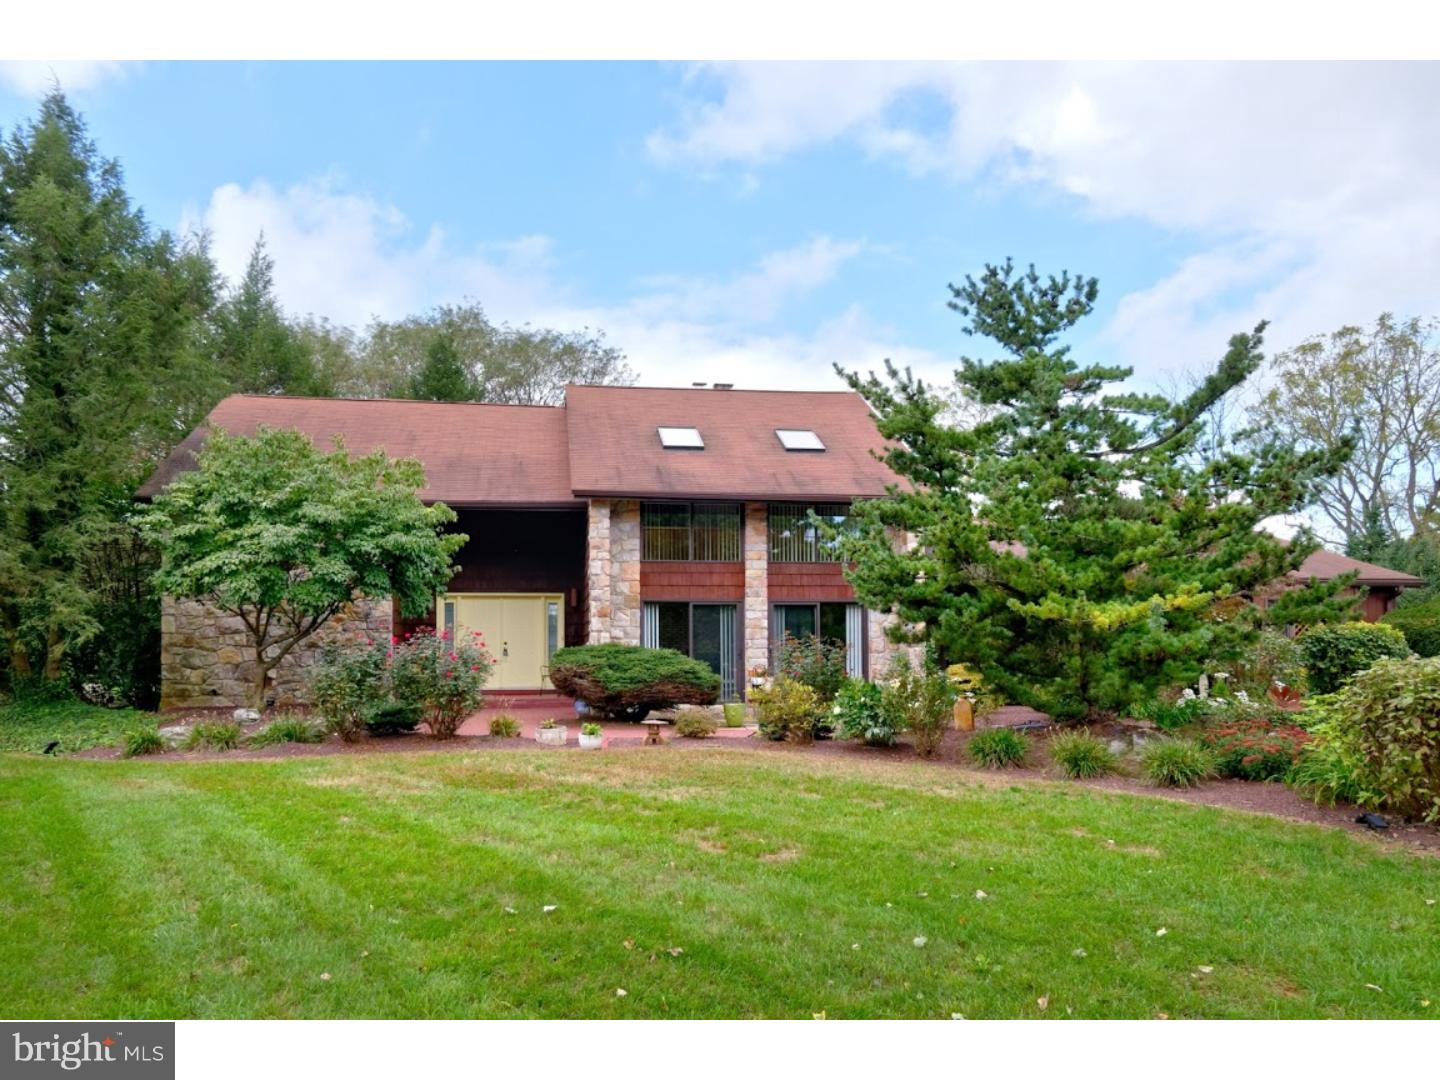 2050 DOUGHERTY CIRCLE, MACUNGIE, PA 18062